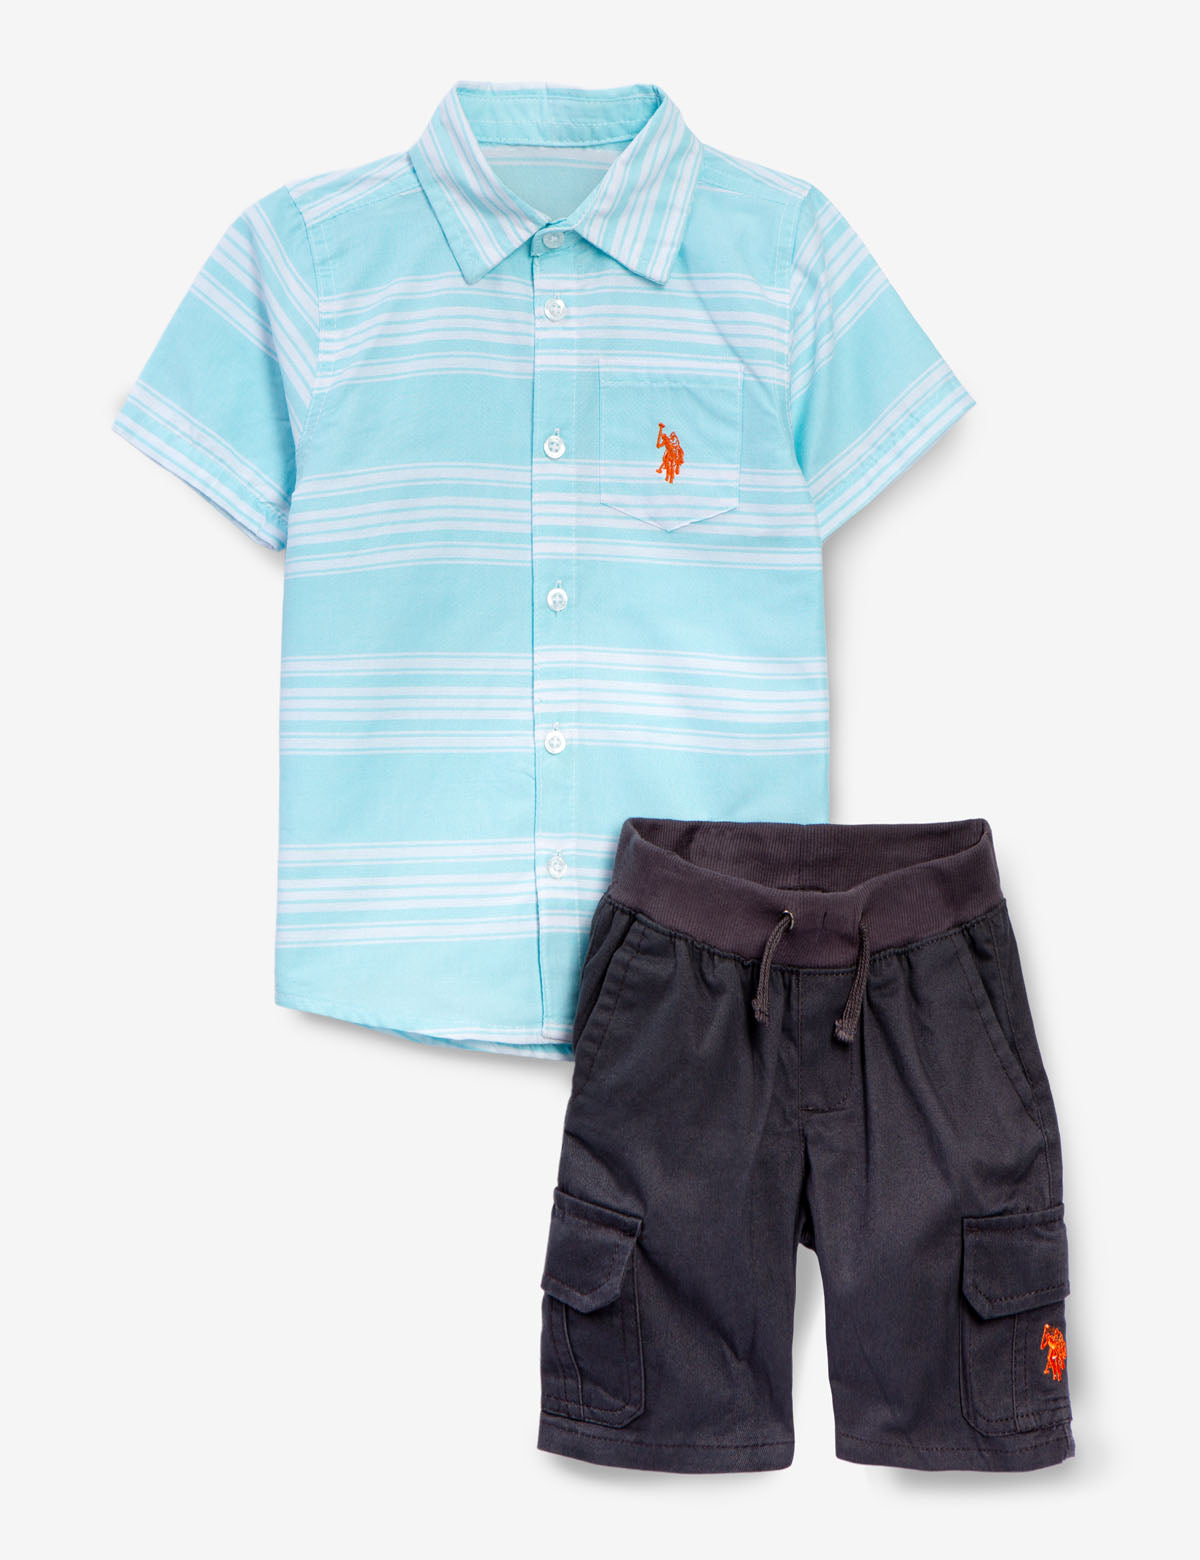 BOYS 2 PIECE SET - SHIRT & SHORTS - U.S. Polo Assn.